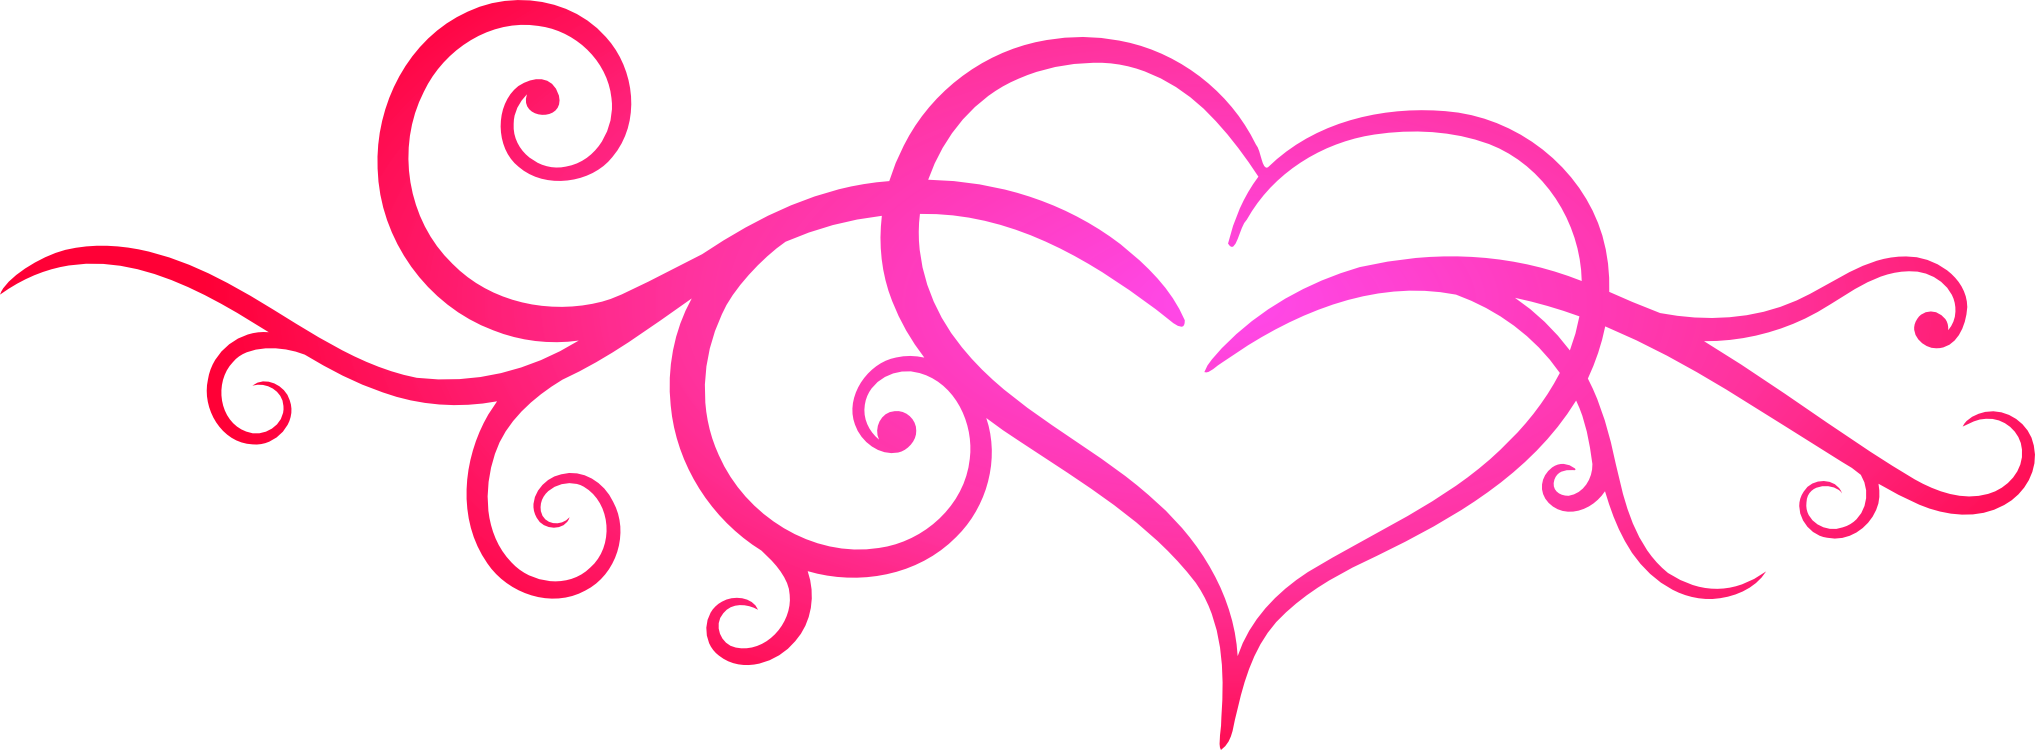 Pink flourish png. Free scrollwork heart cliparts